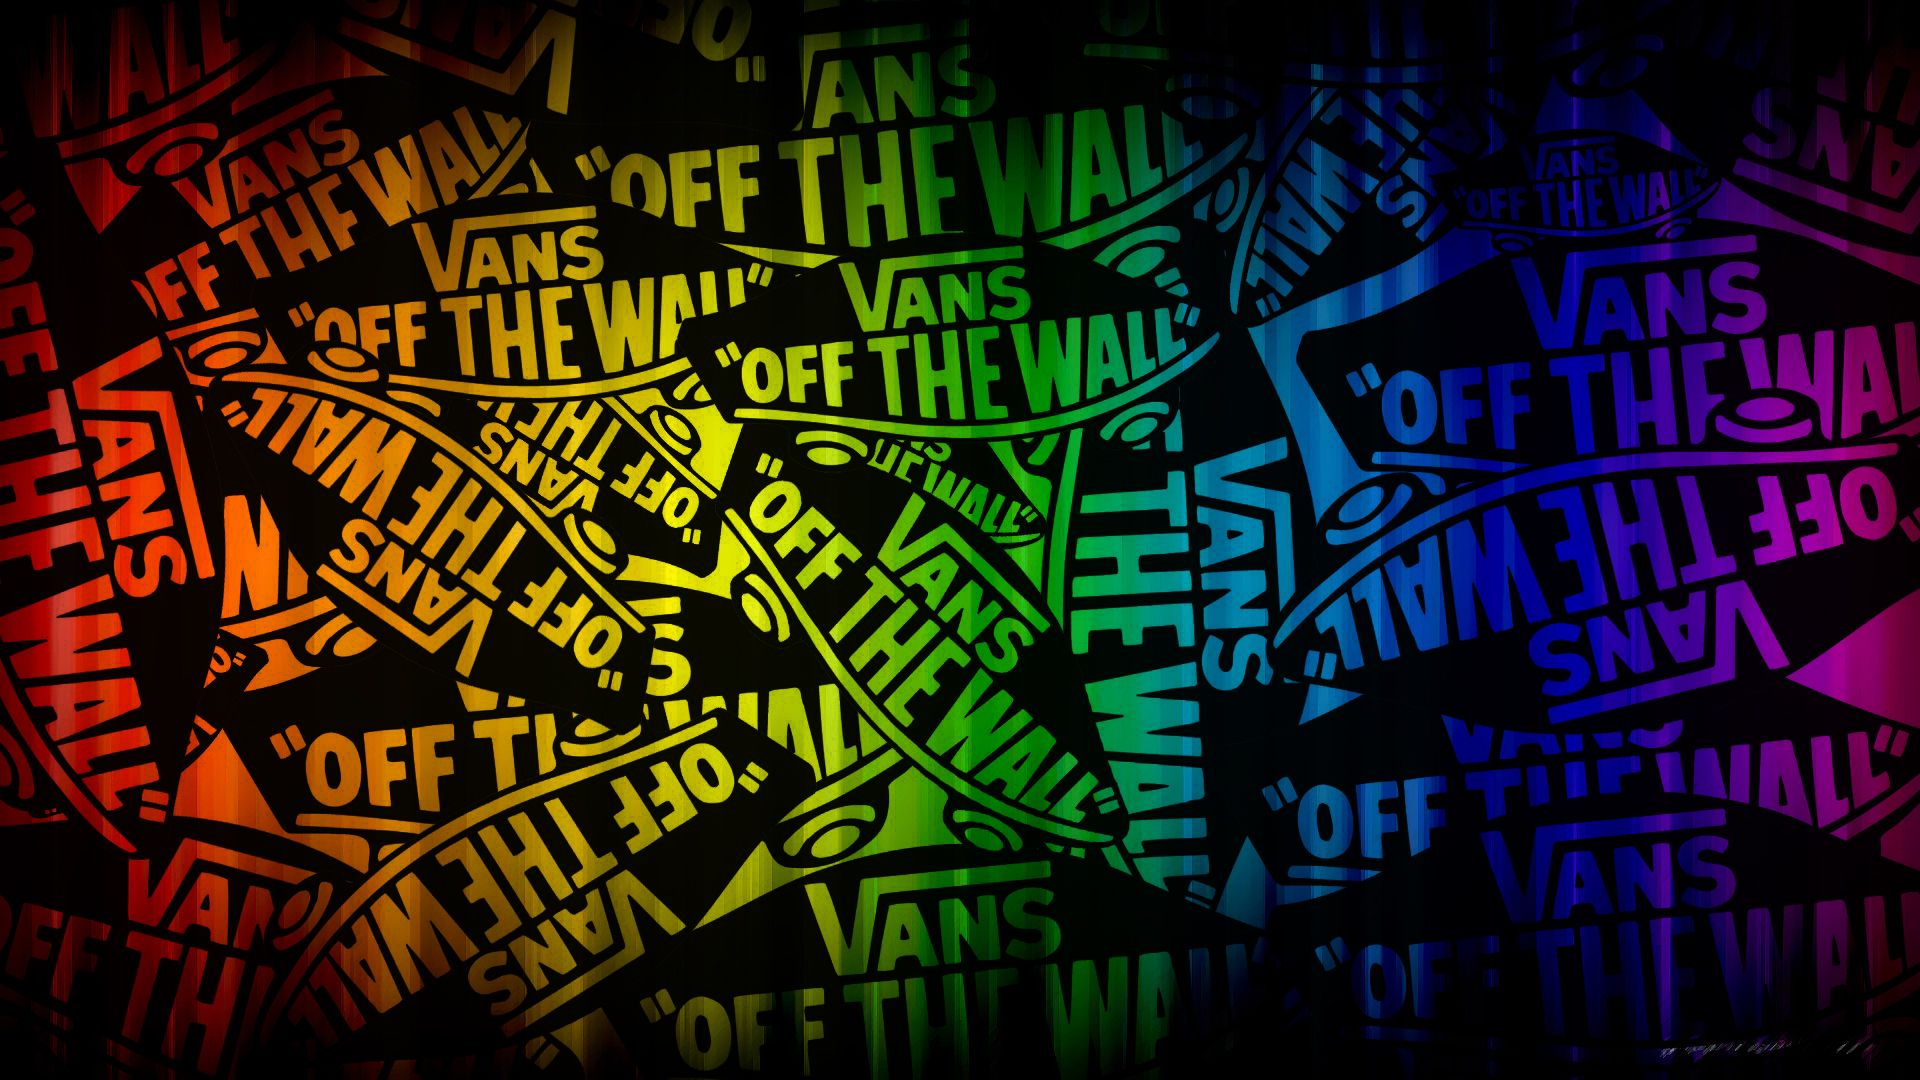 Vans Wallpaper Vans Off The Wall Logo Wallpaper Hd Vans Skateboard